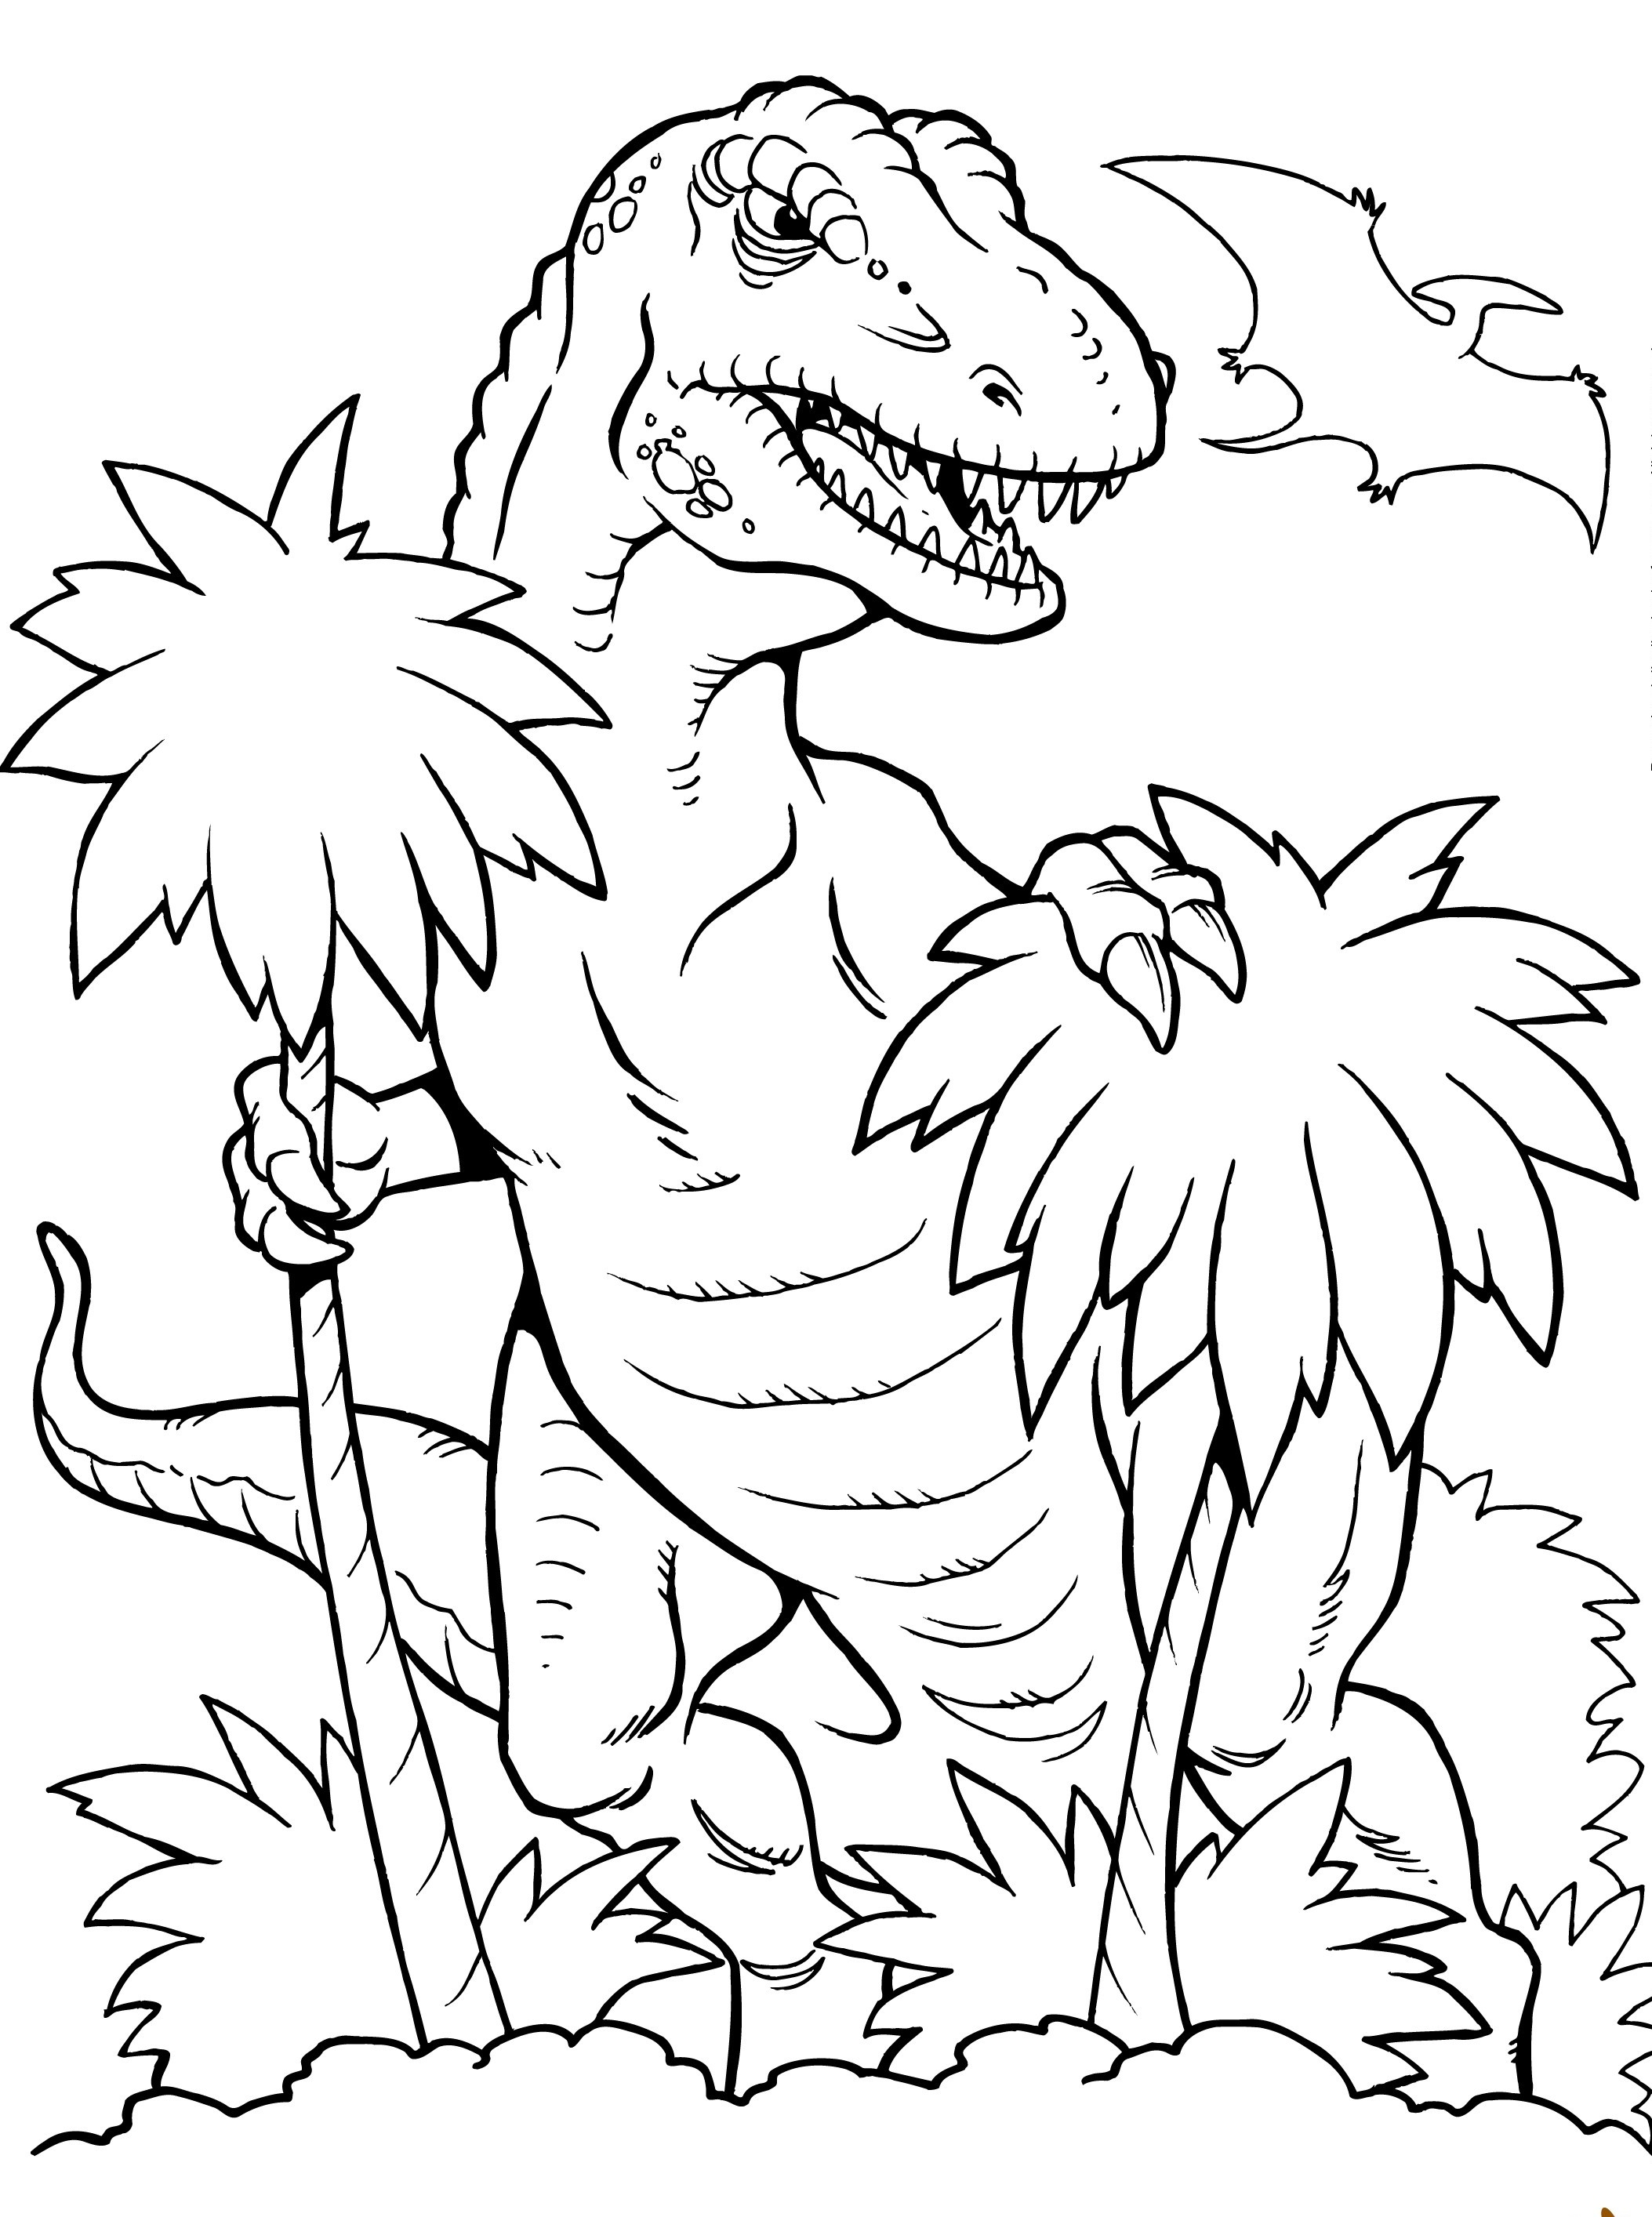 Coloring Pages of T Rex Dinosaurs